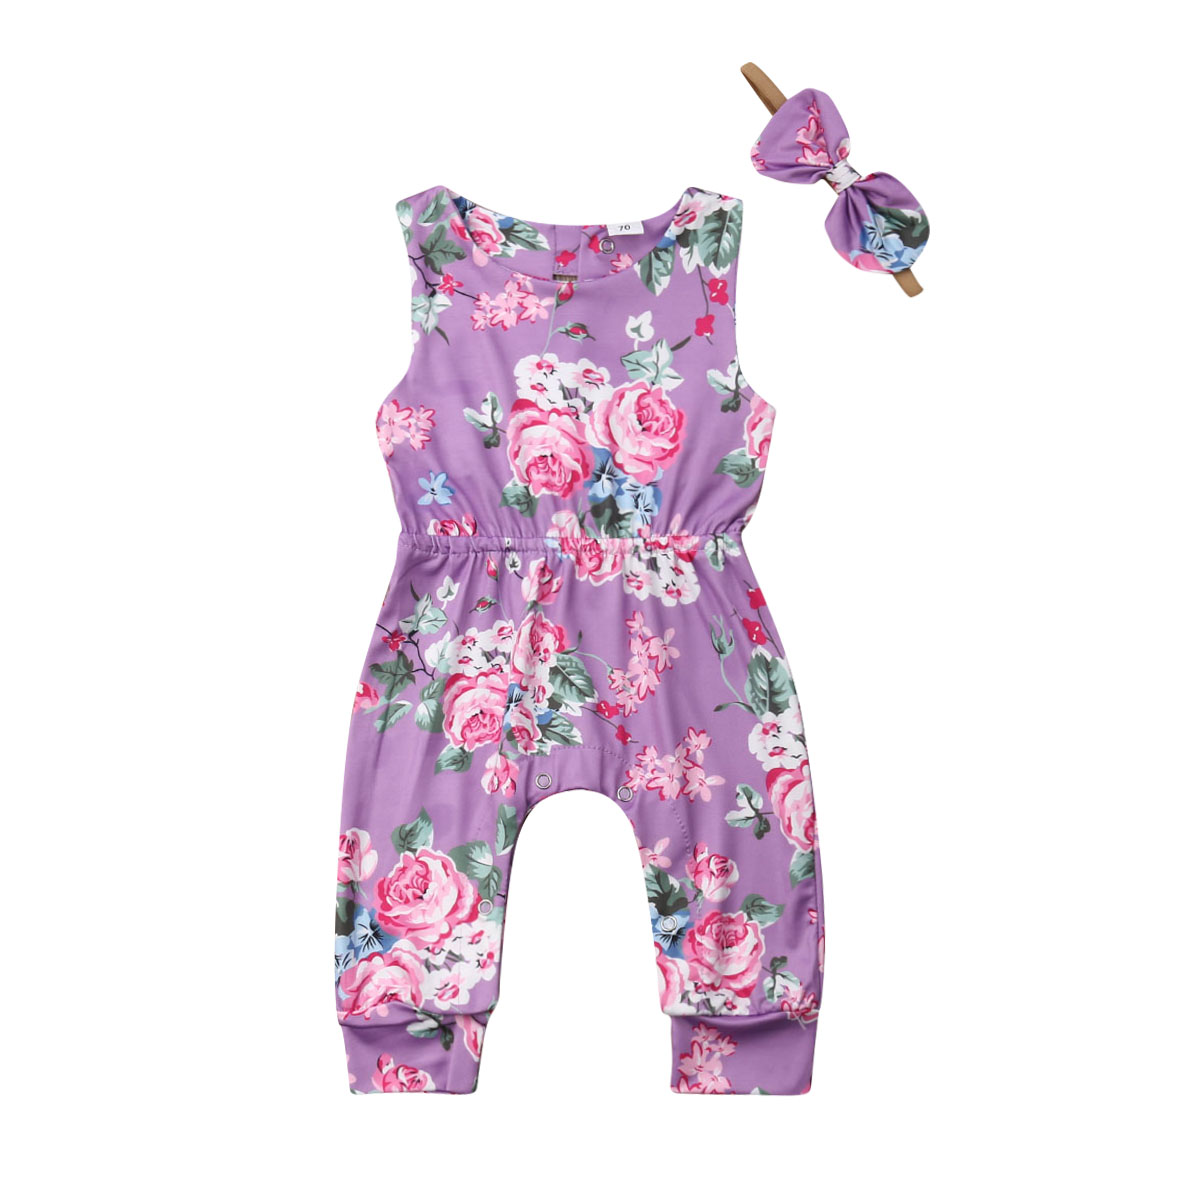 US 0-24M Newborn Infant Baby Girls Floral   Romper   Summer Sleeveless Jumpsuit Outfits Playsuit Clothes with Headband